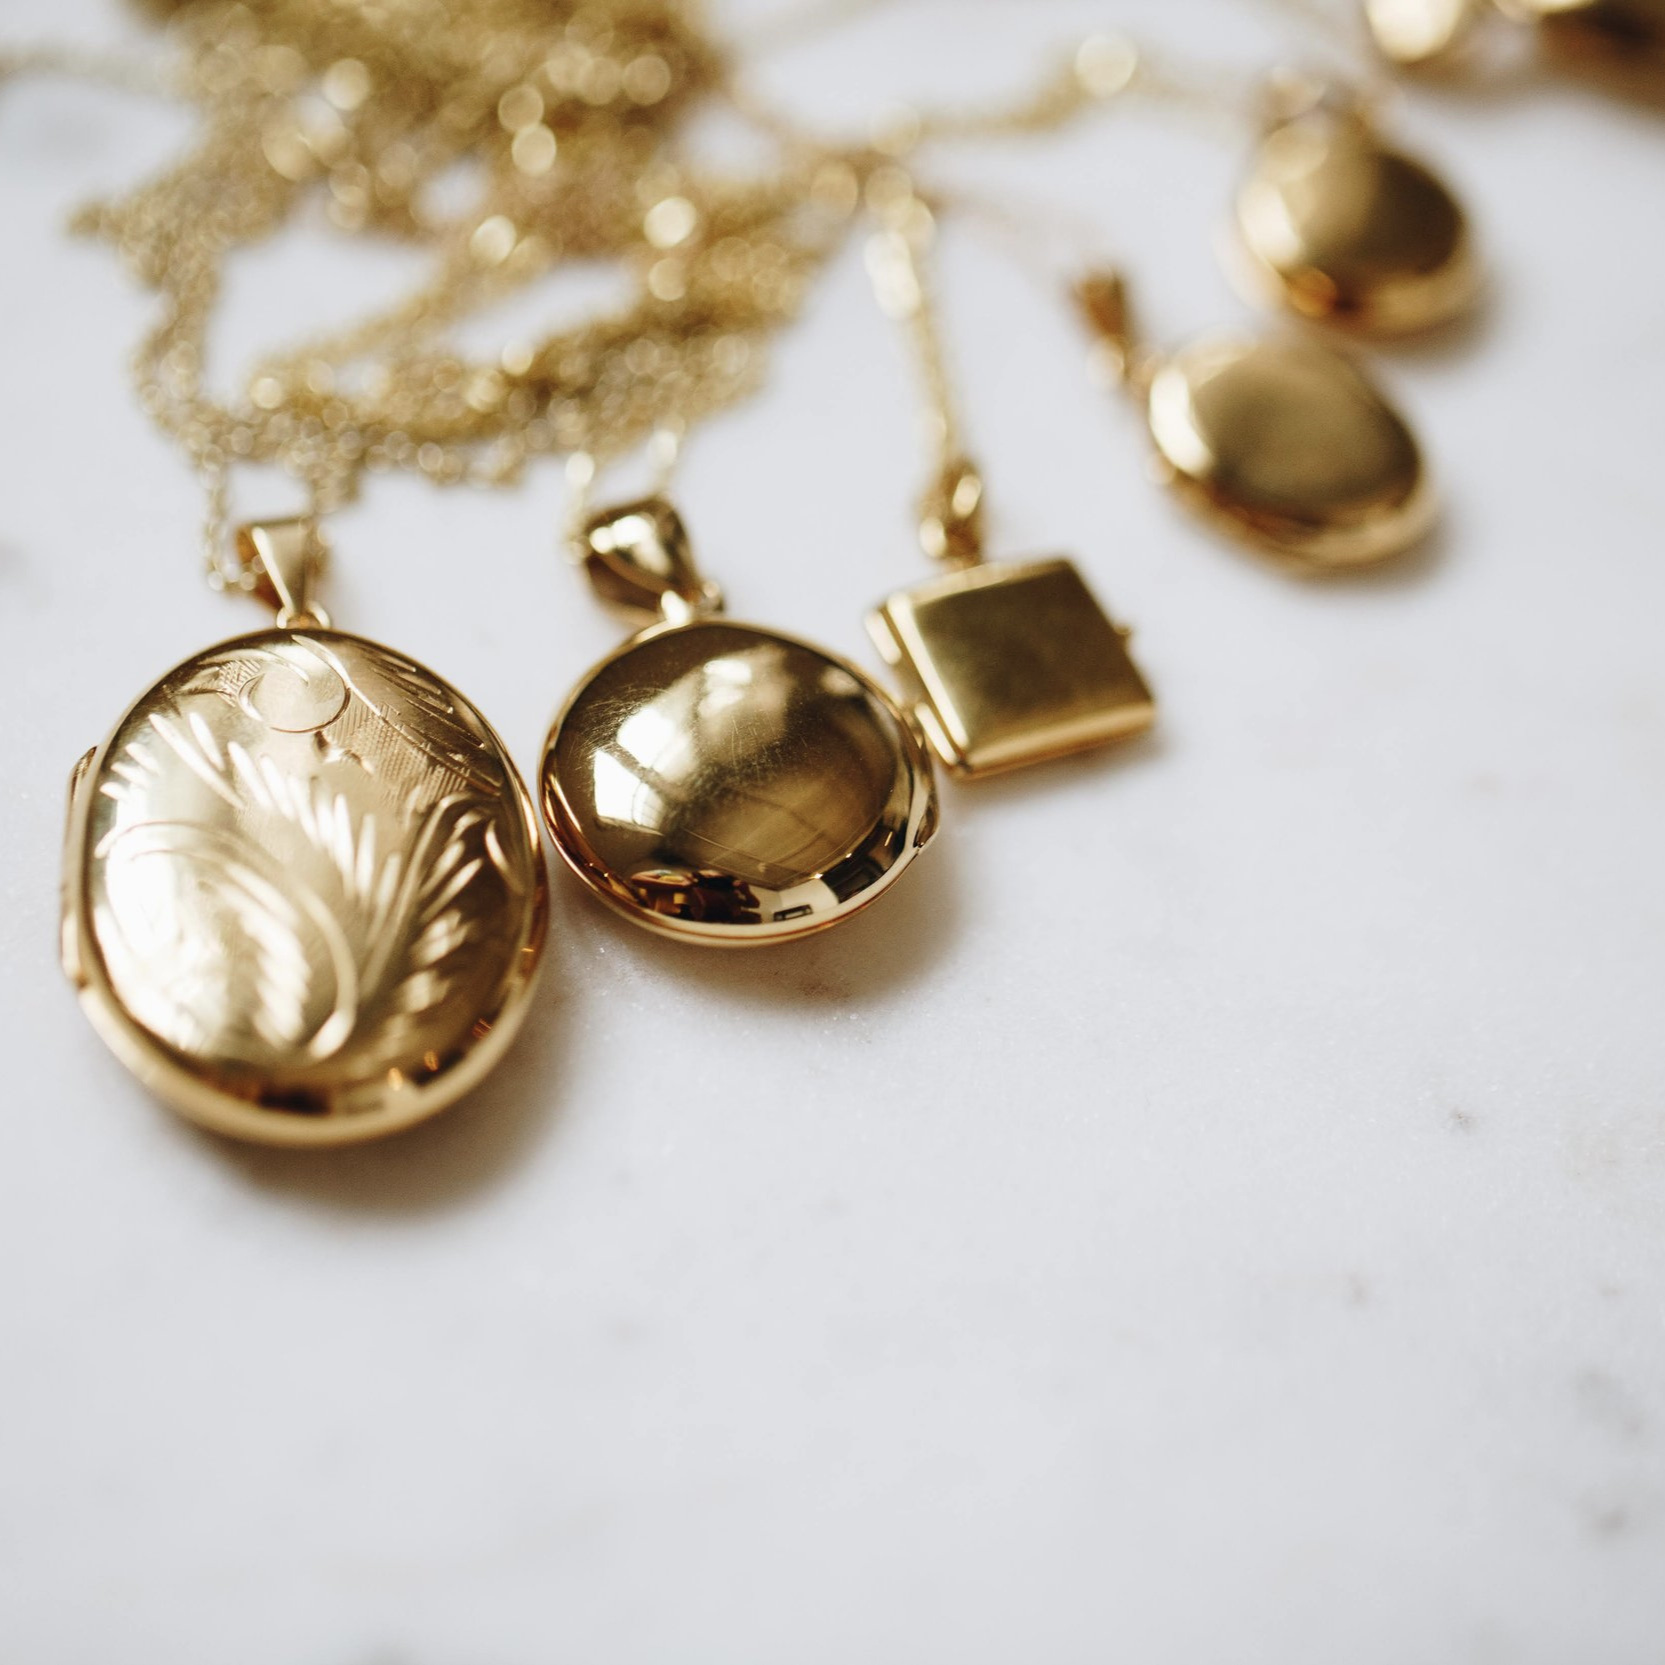 LOCKET SISTERS - Use Code KATIESAYS for 15% off your order